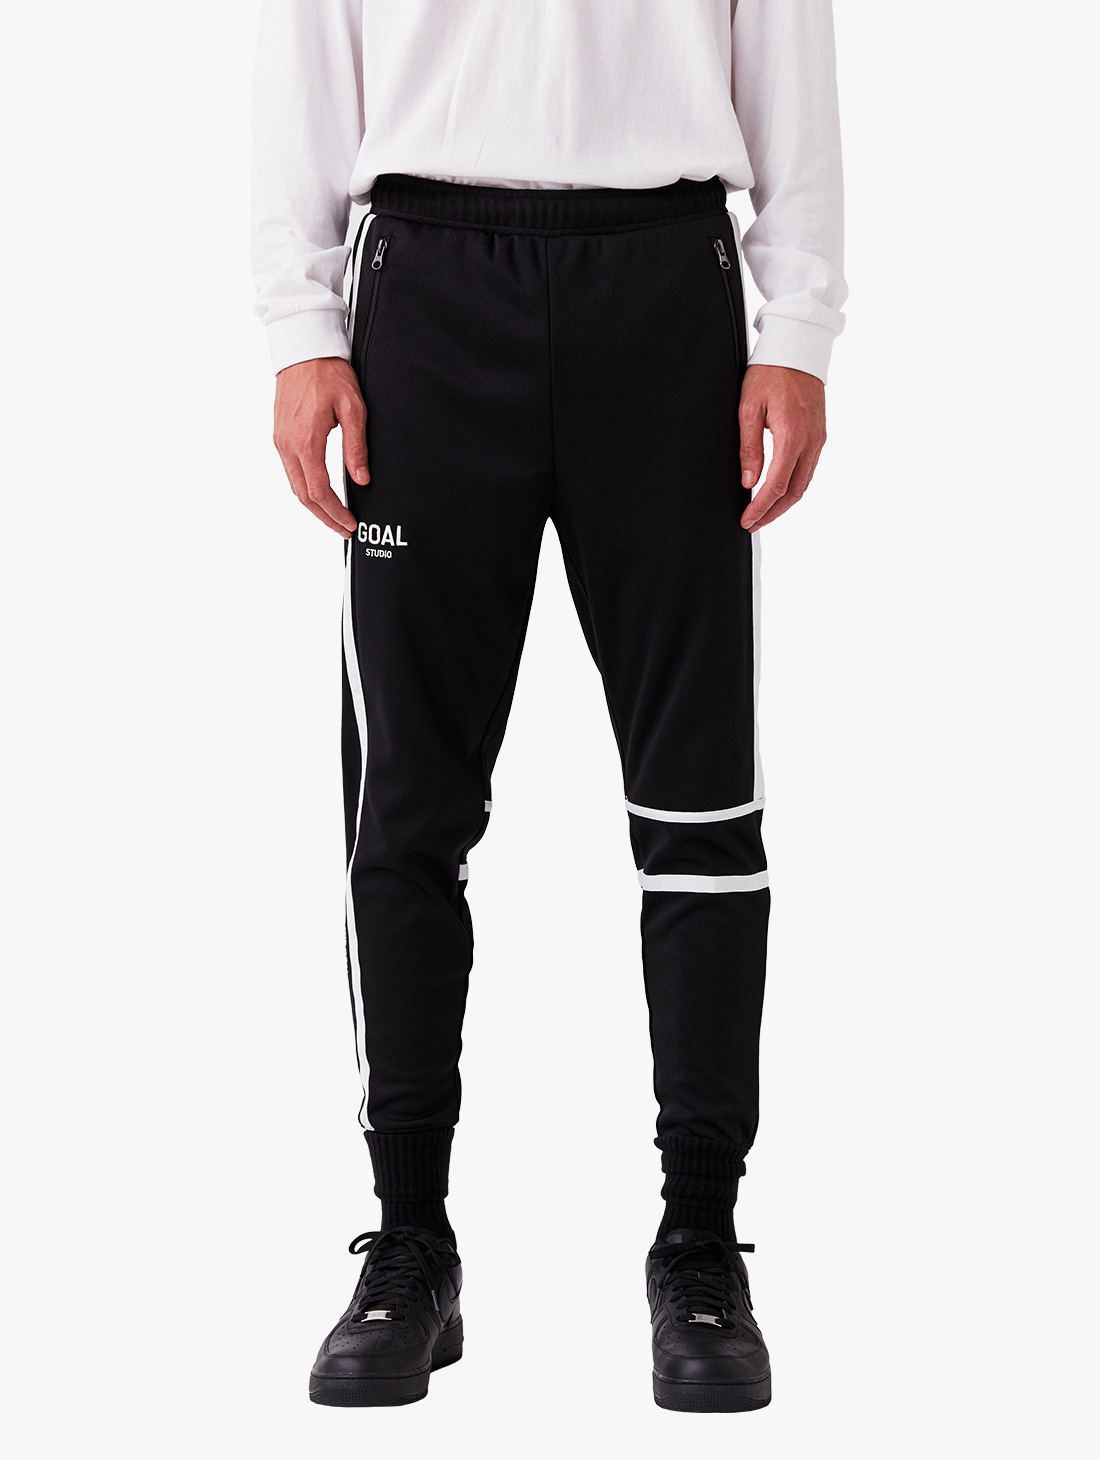 GOALSTUDIO CFC TRACK PANTS